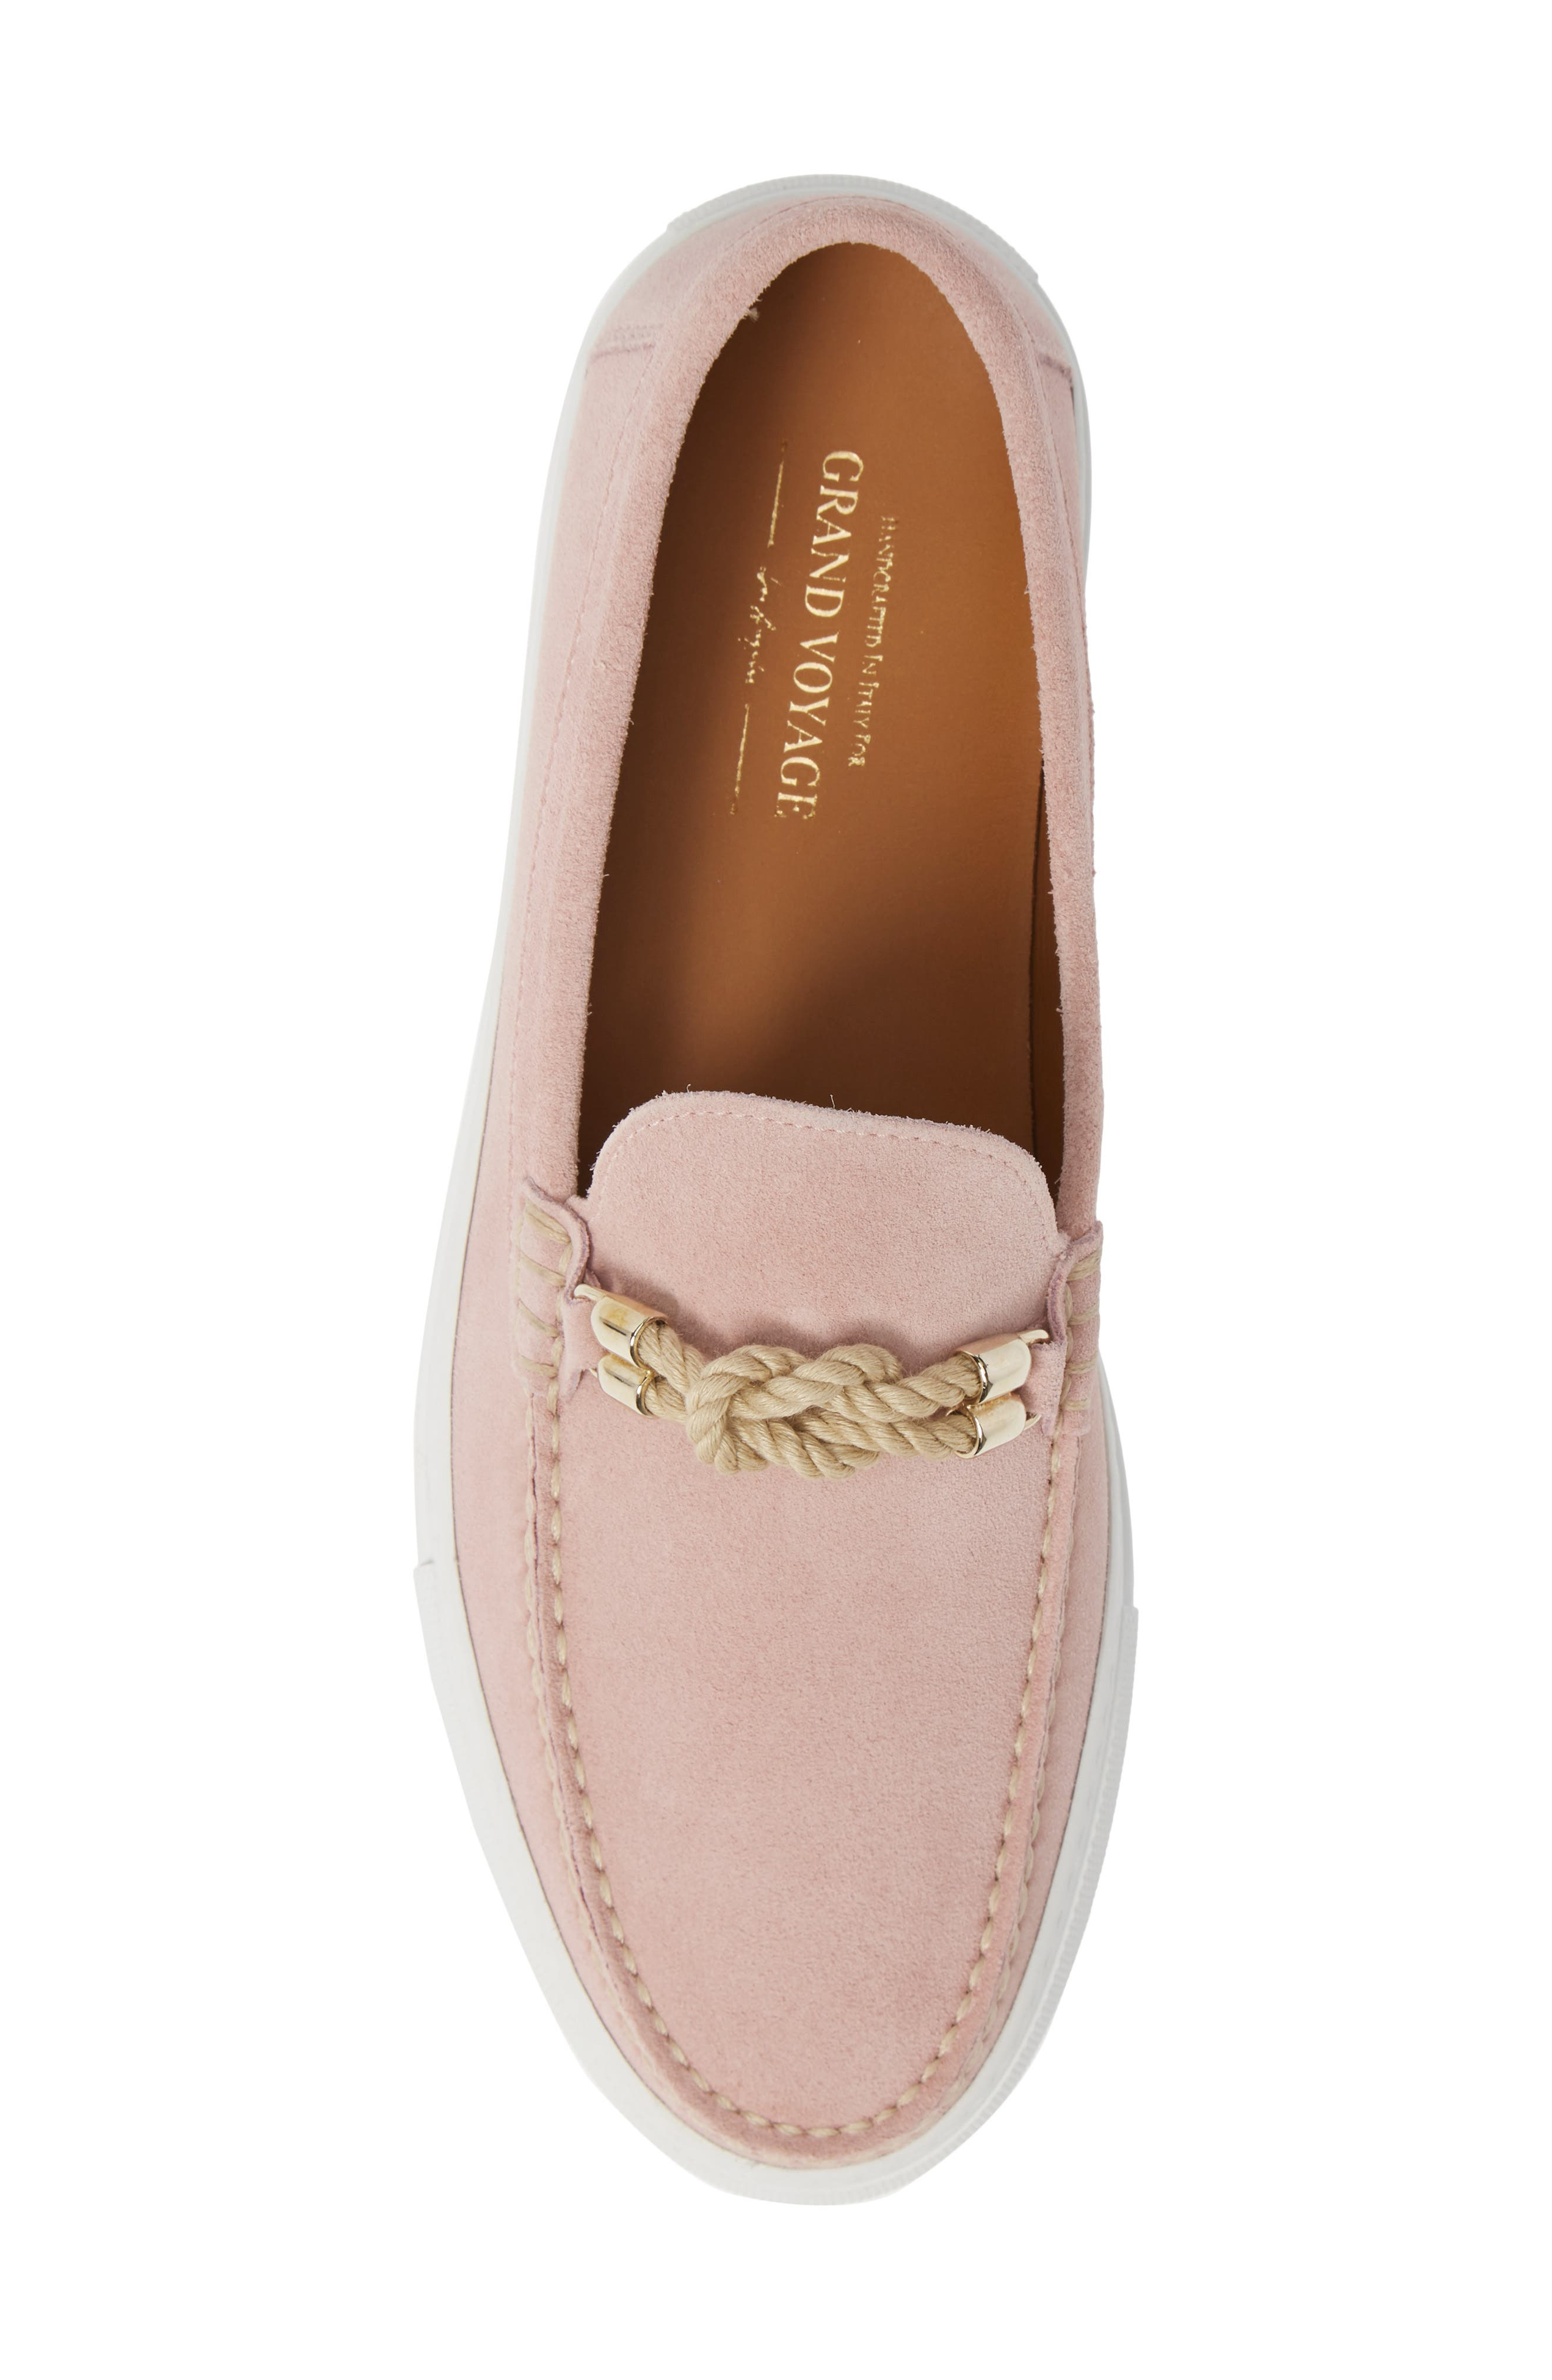 Britton Square Knot Loafer,                             Alternate thumbnail 5, color,                             ROSE SUEDE